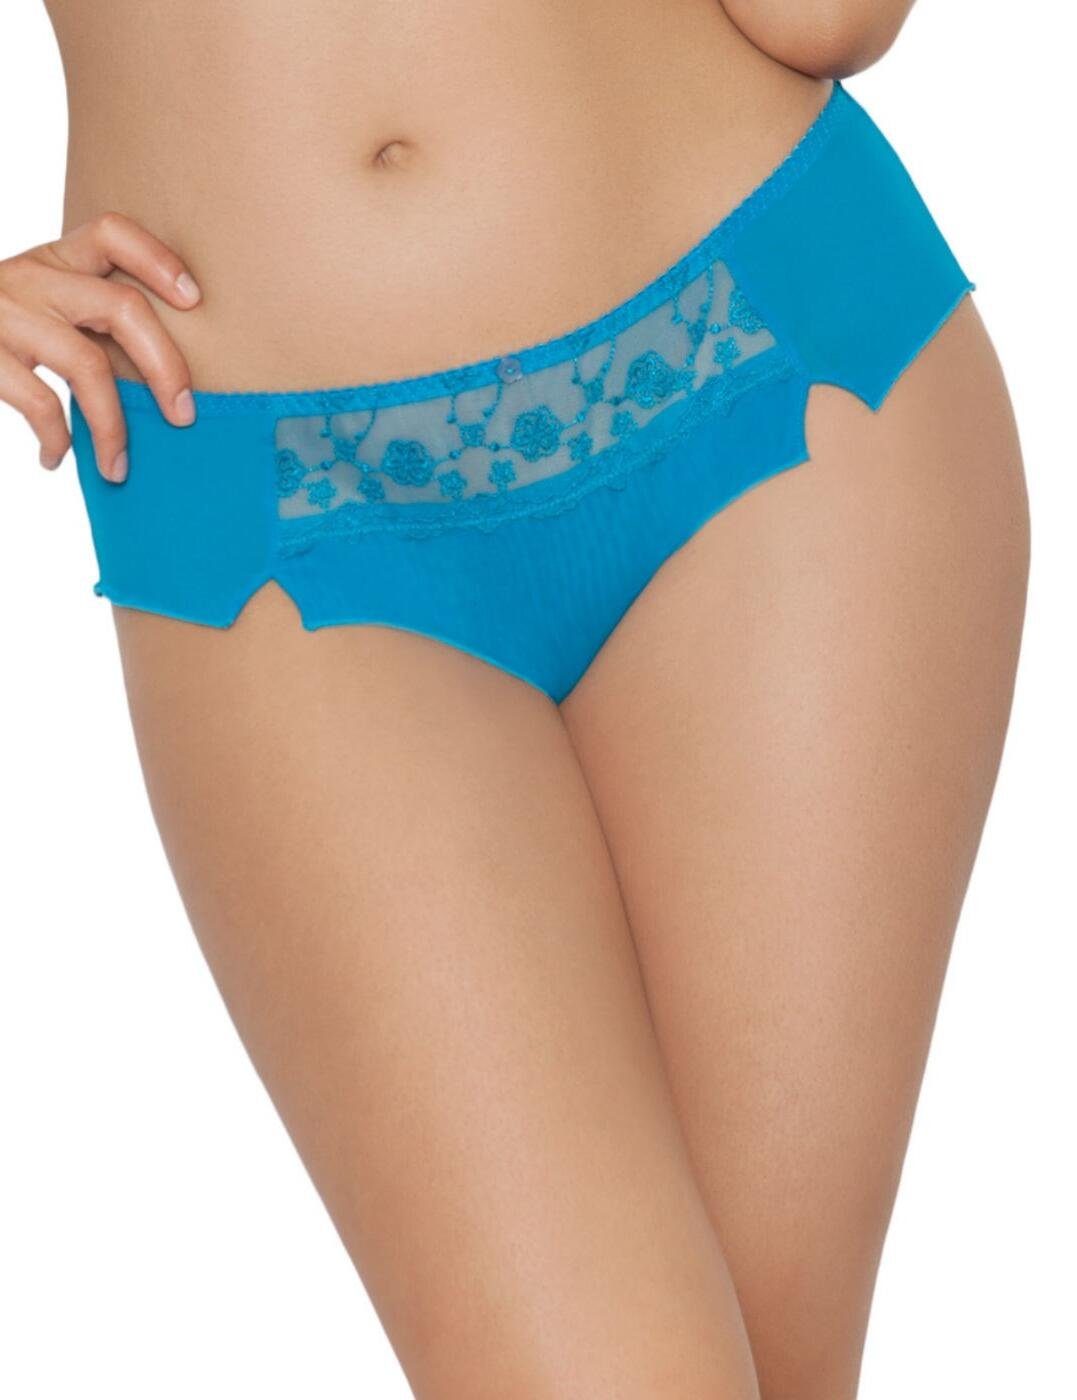 CK8003 Curvy Kate Florence Short  - CK8003 Pacific Blue